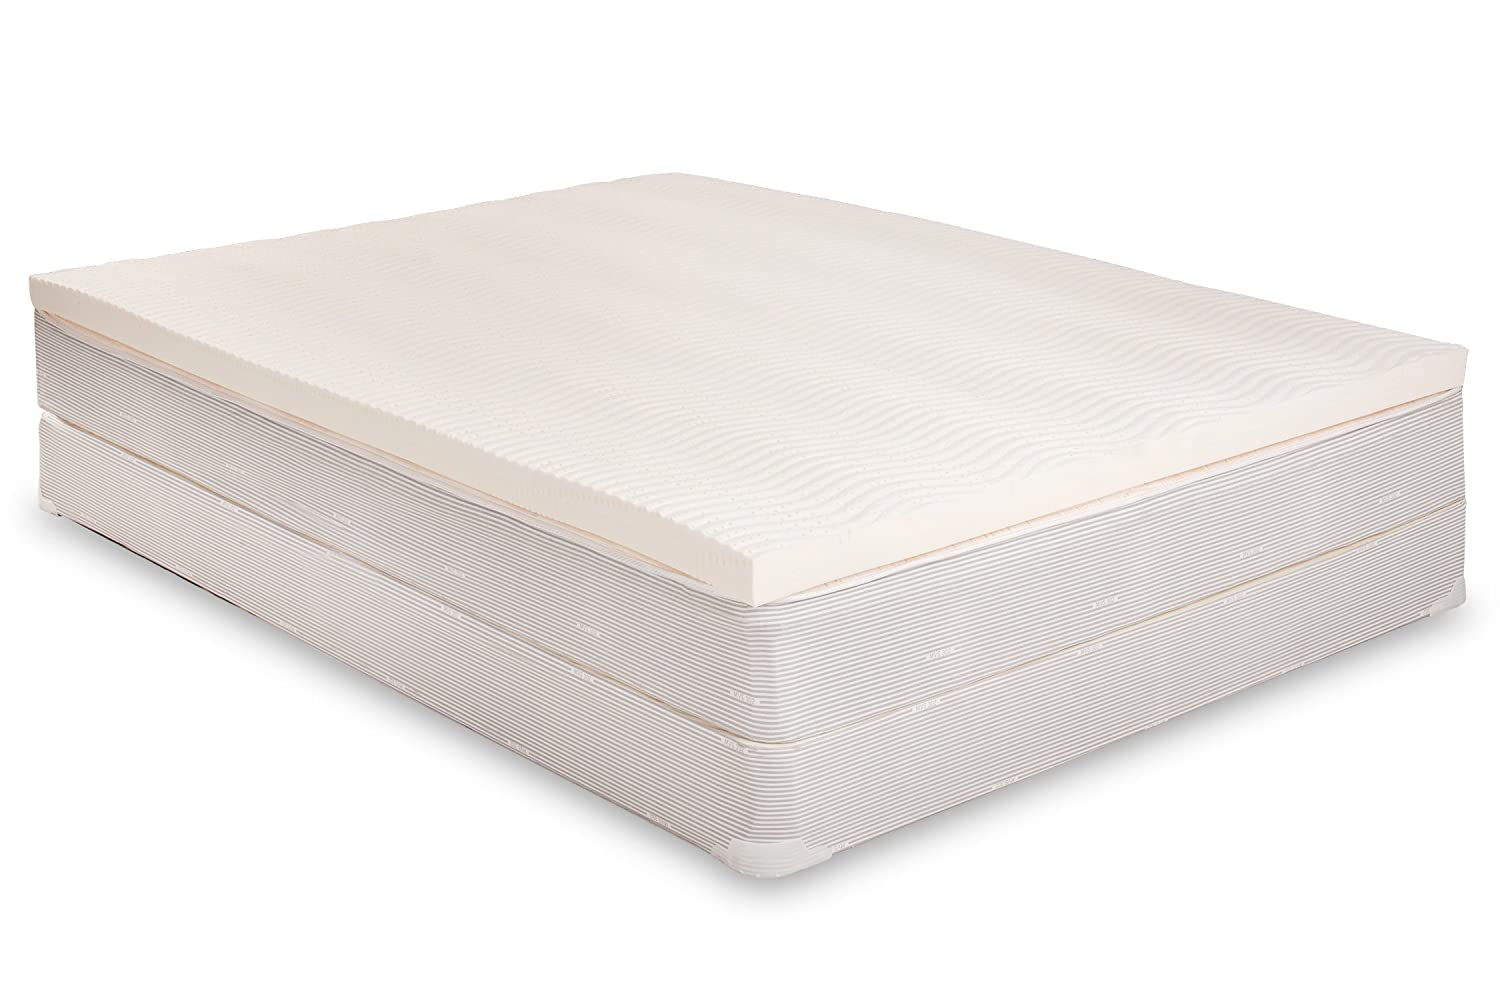 King Size Mattress Topper Internet 4 Null 3 Inclassic